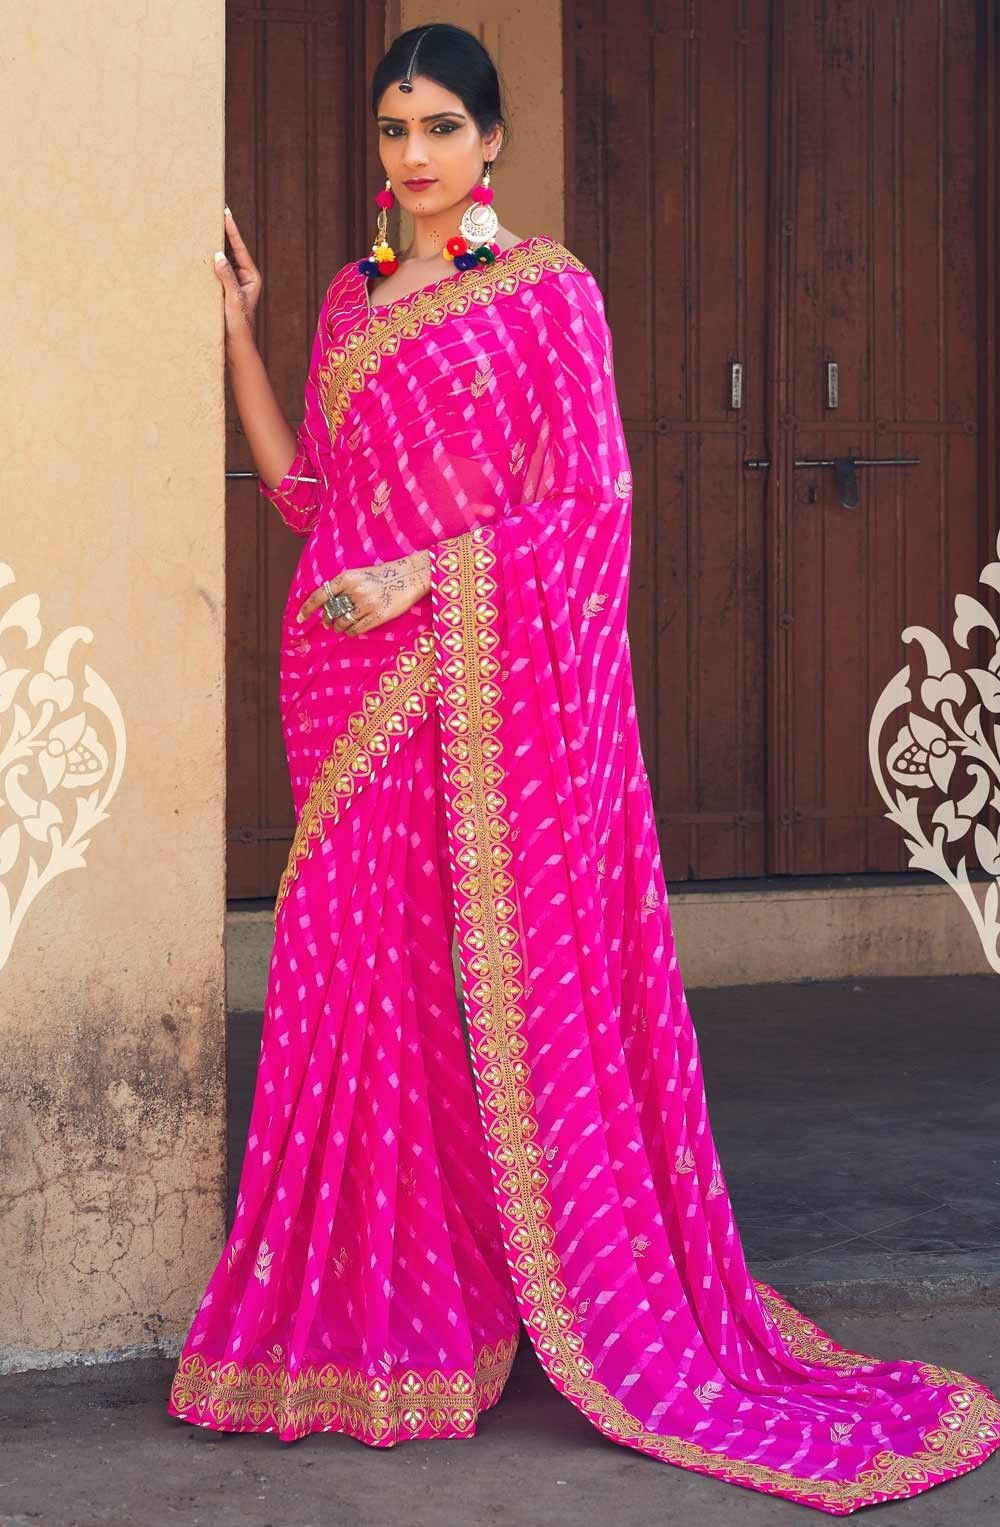 Hot Pink Georgette Bandhni Saree With Gota border work For Festivals ...